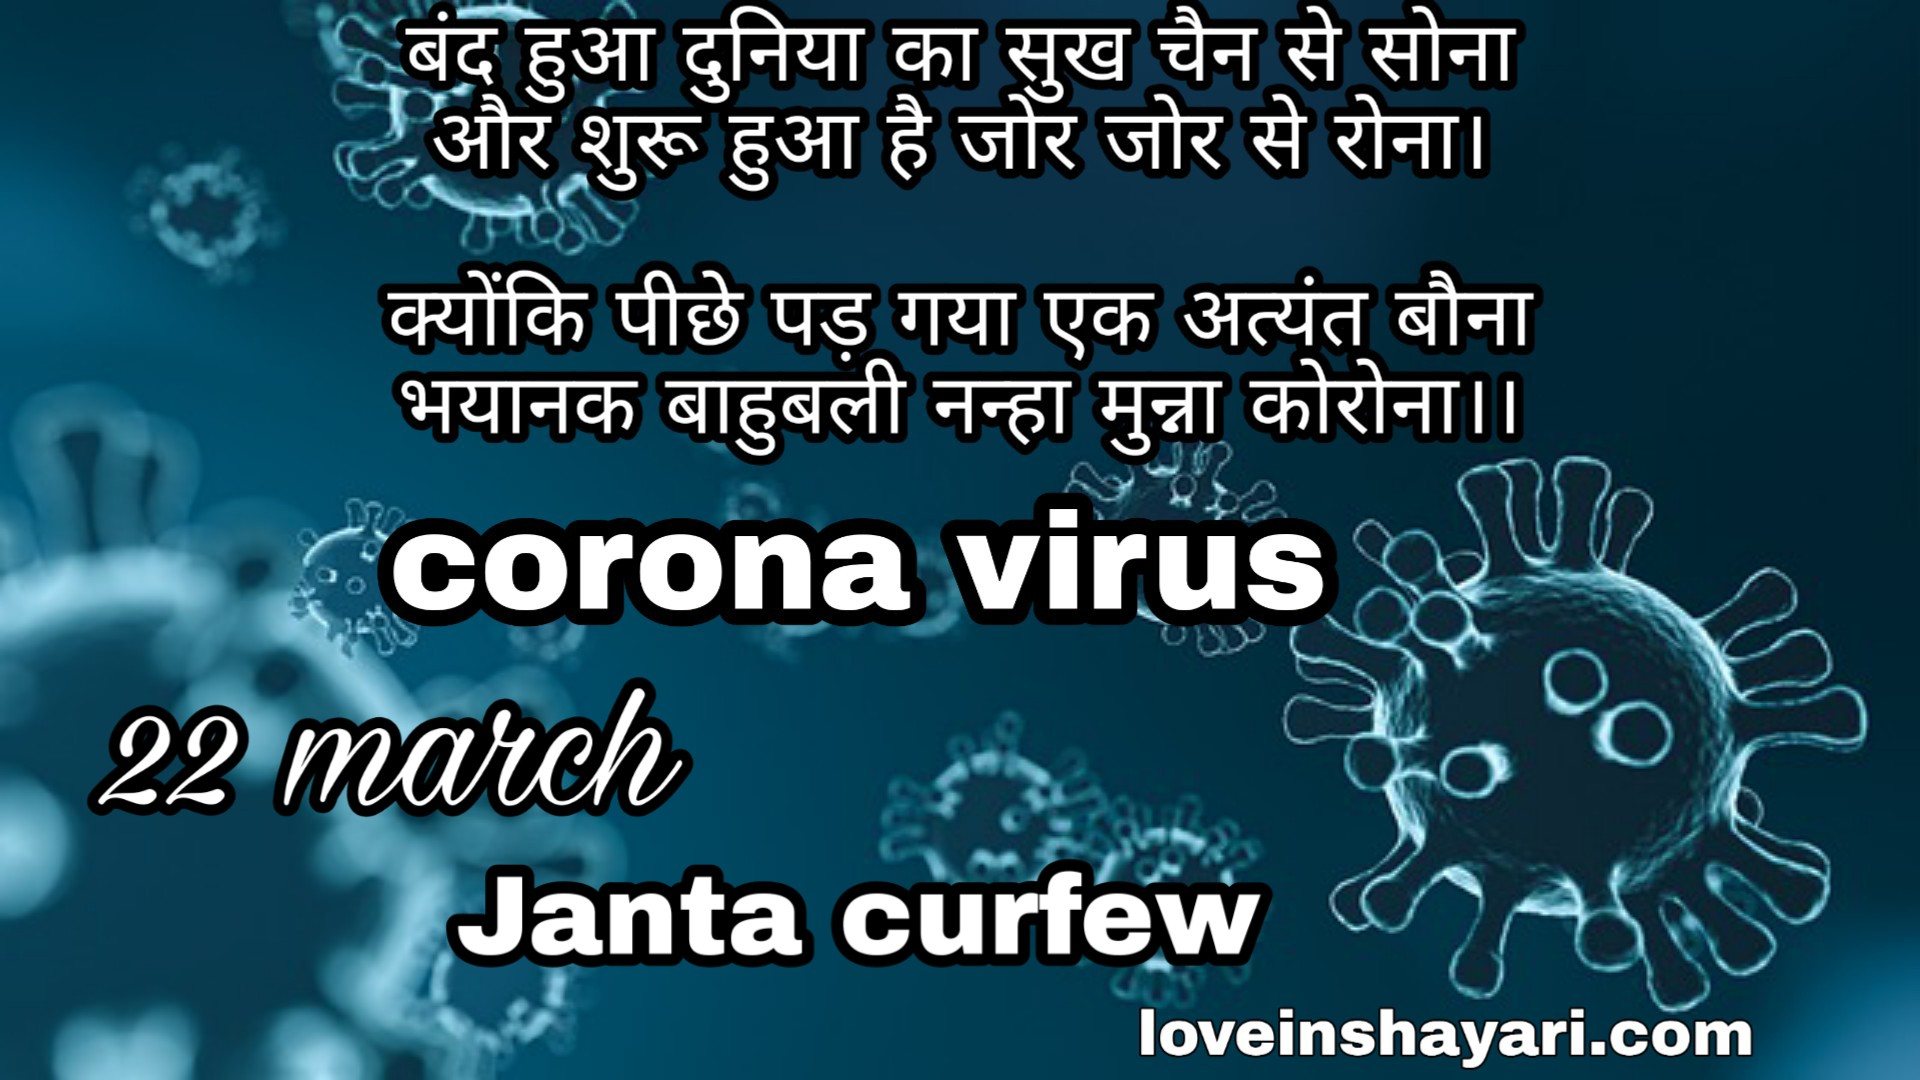 Photo of Janta curfew shayari images message 22 march